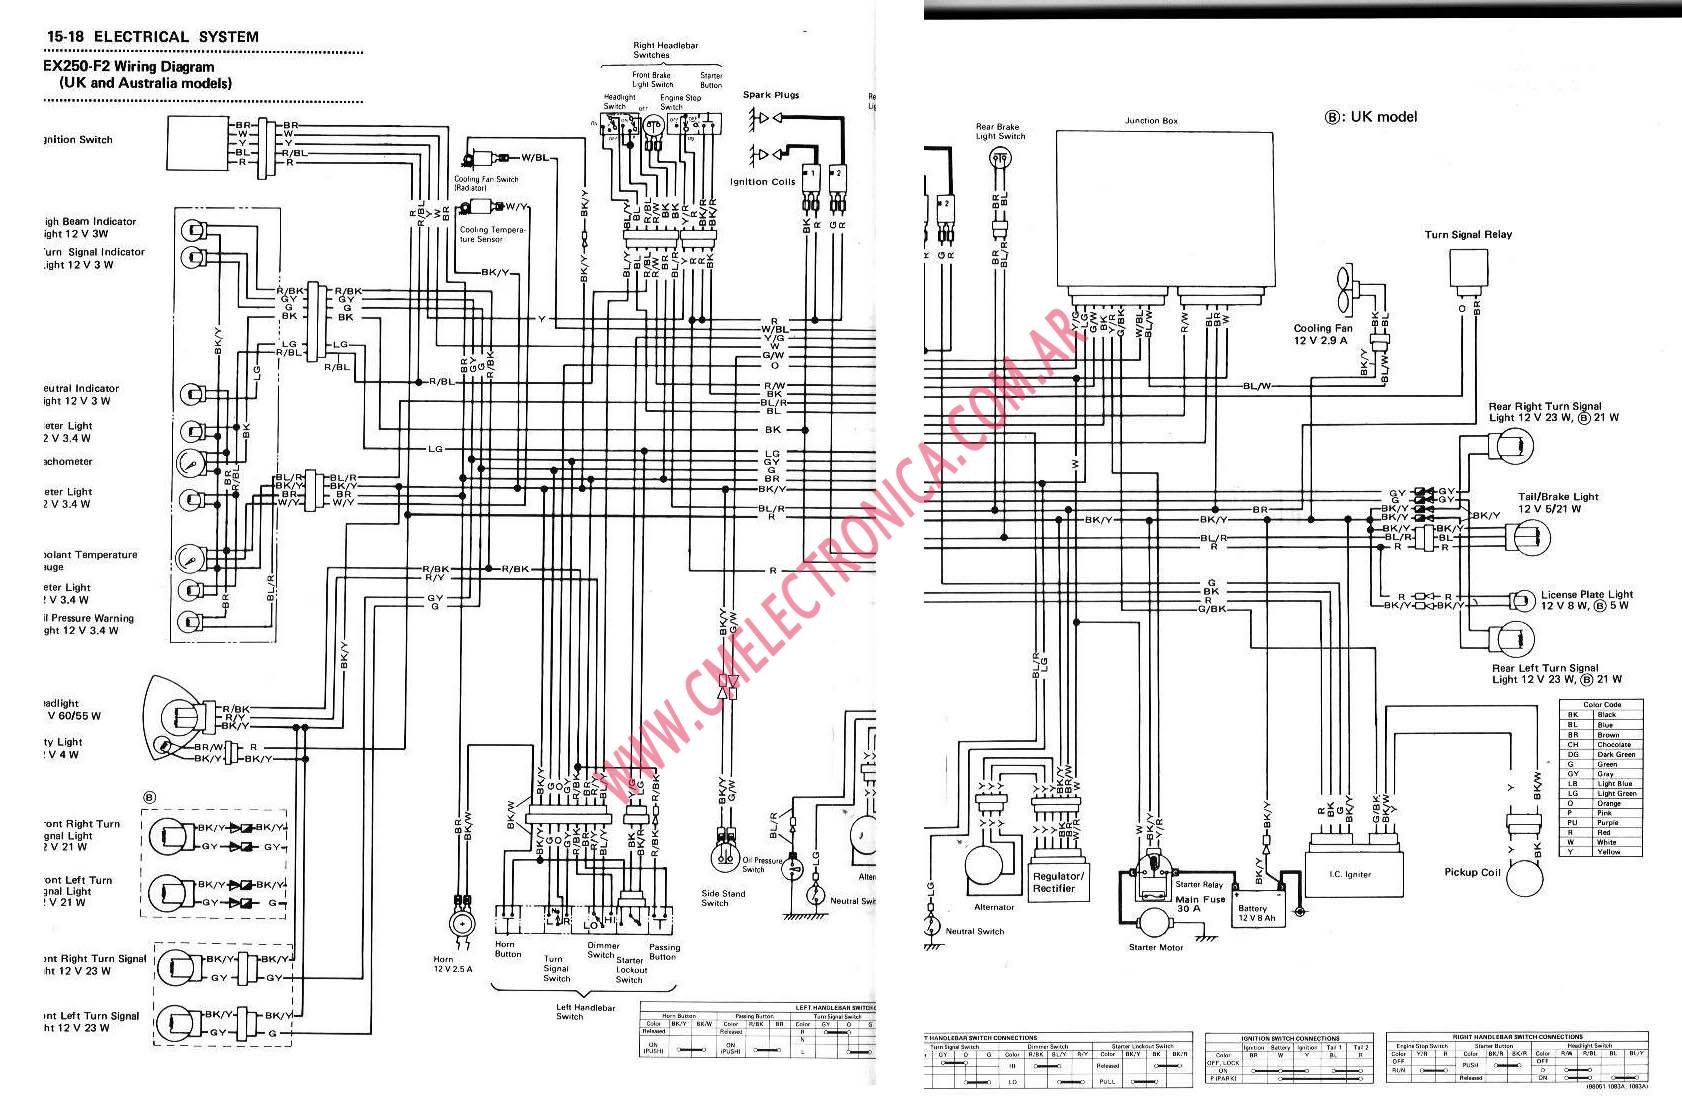 Kawasaki Ninja 600 Wiring Diagram And Schematics Klr250 Klr Wire Auto Rh Copiet Tripa Co Diagrams Of